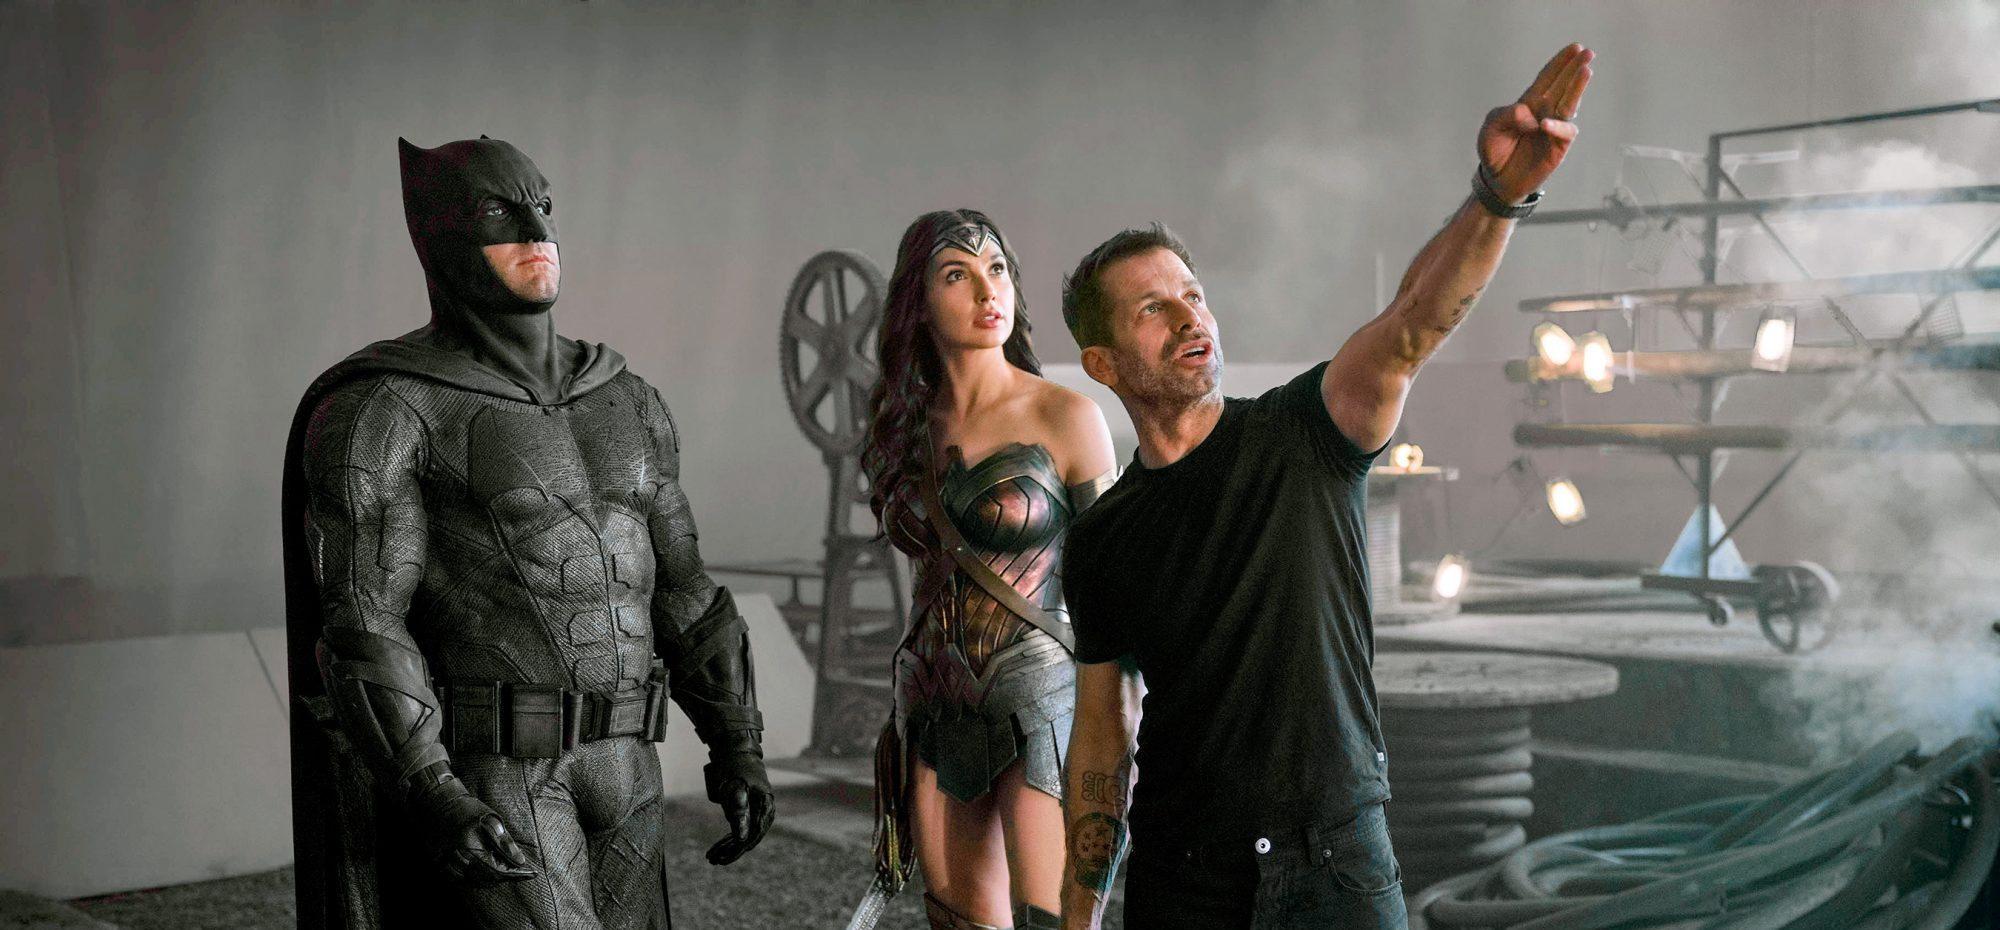 Zack Snyder Upcoming Movie 'Rebel Moon' for Netflix   What We Know So Far!